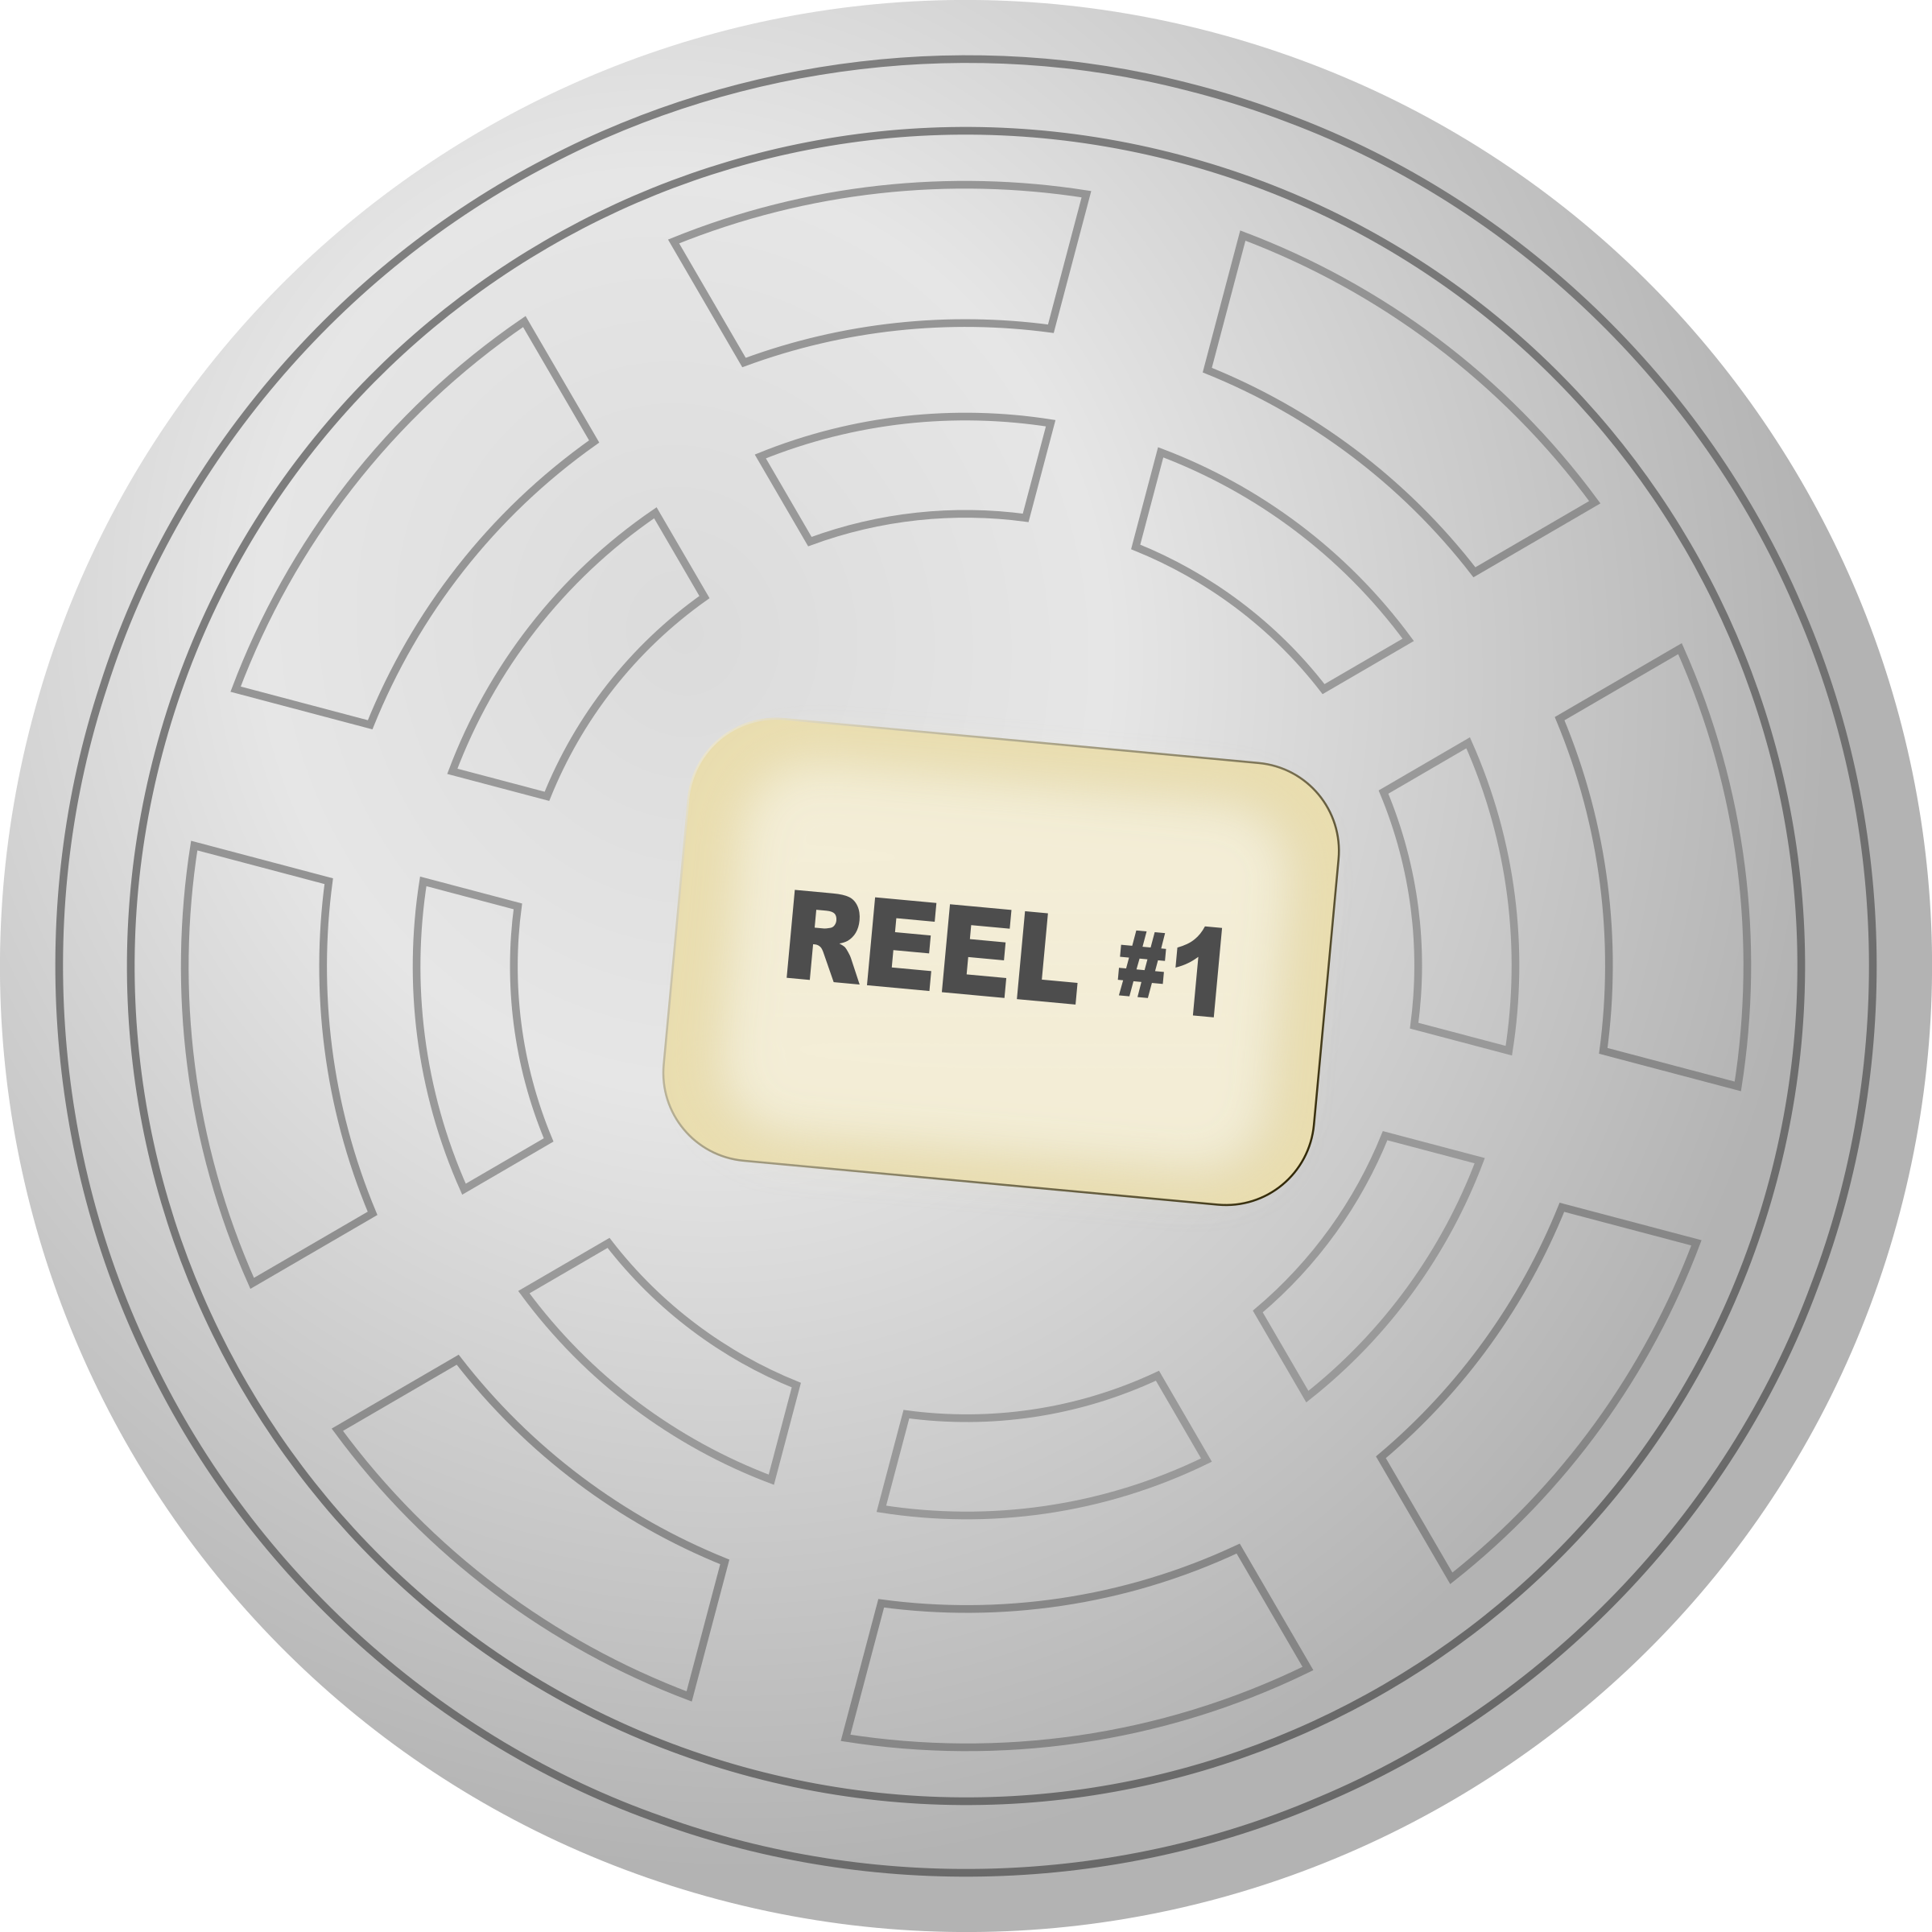 Cinema clipart reel. Motion picture film canister